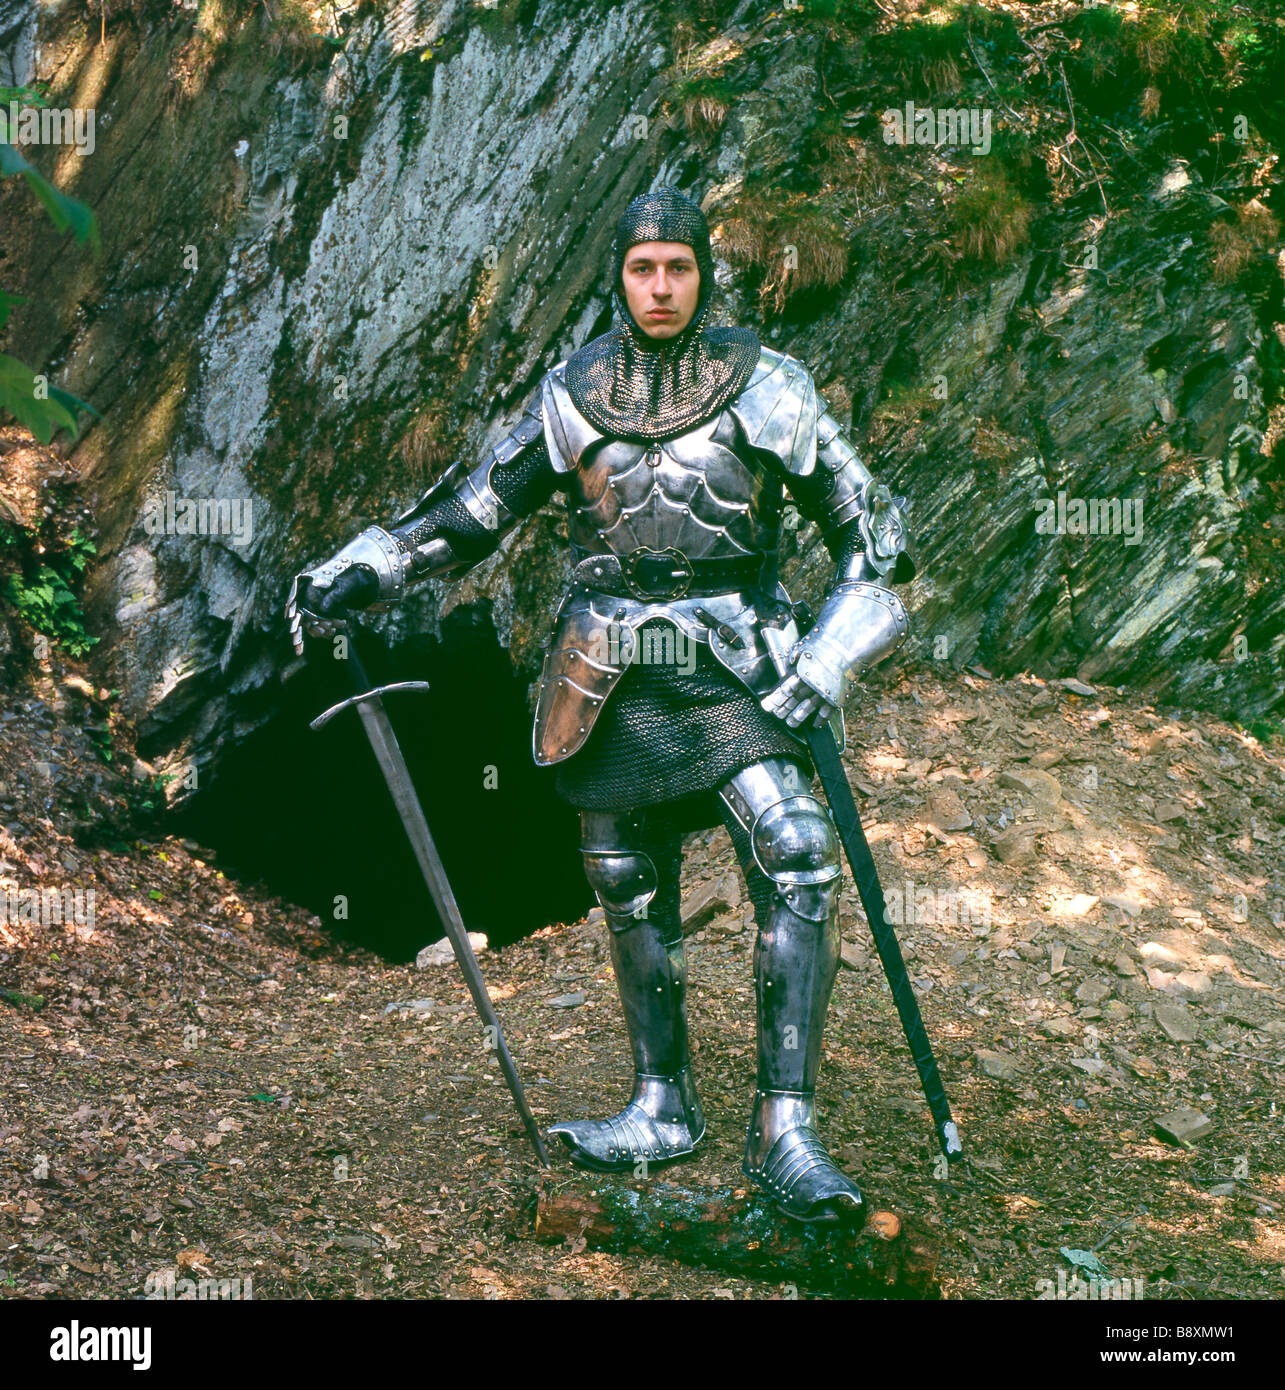 Medieval knight in shining armour with sword Wales UK  KATHY DEWITT - Stock Image